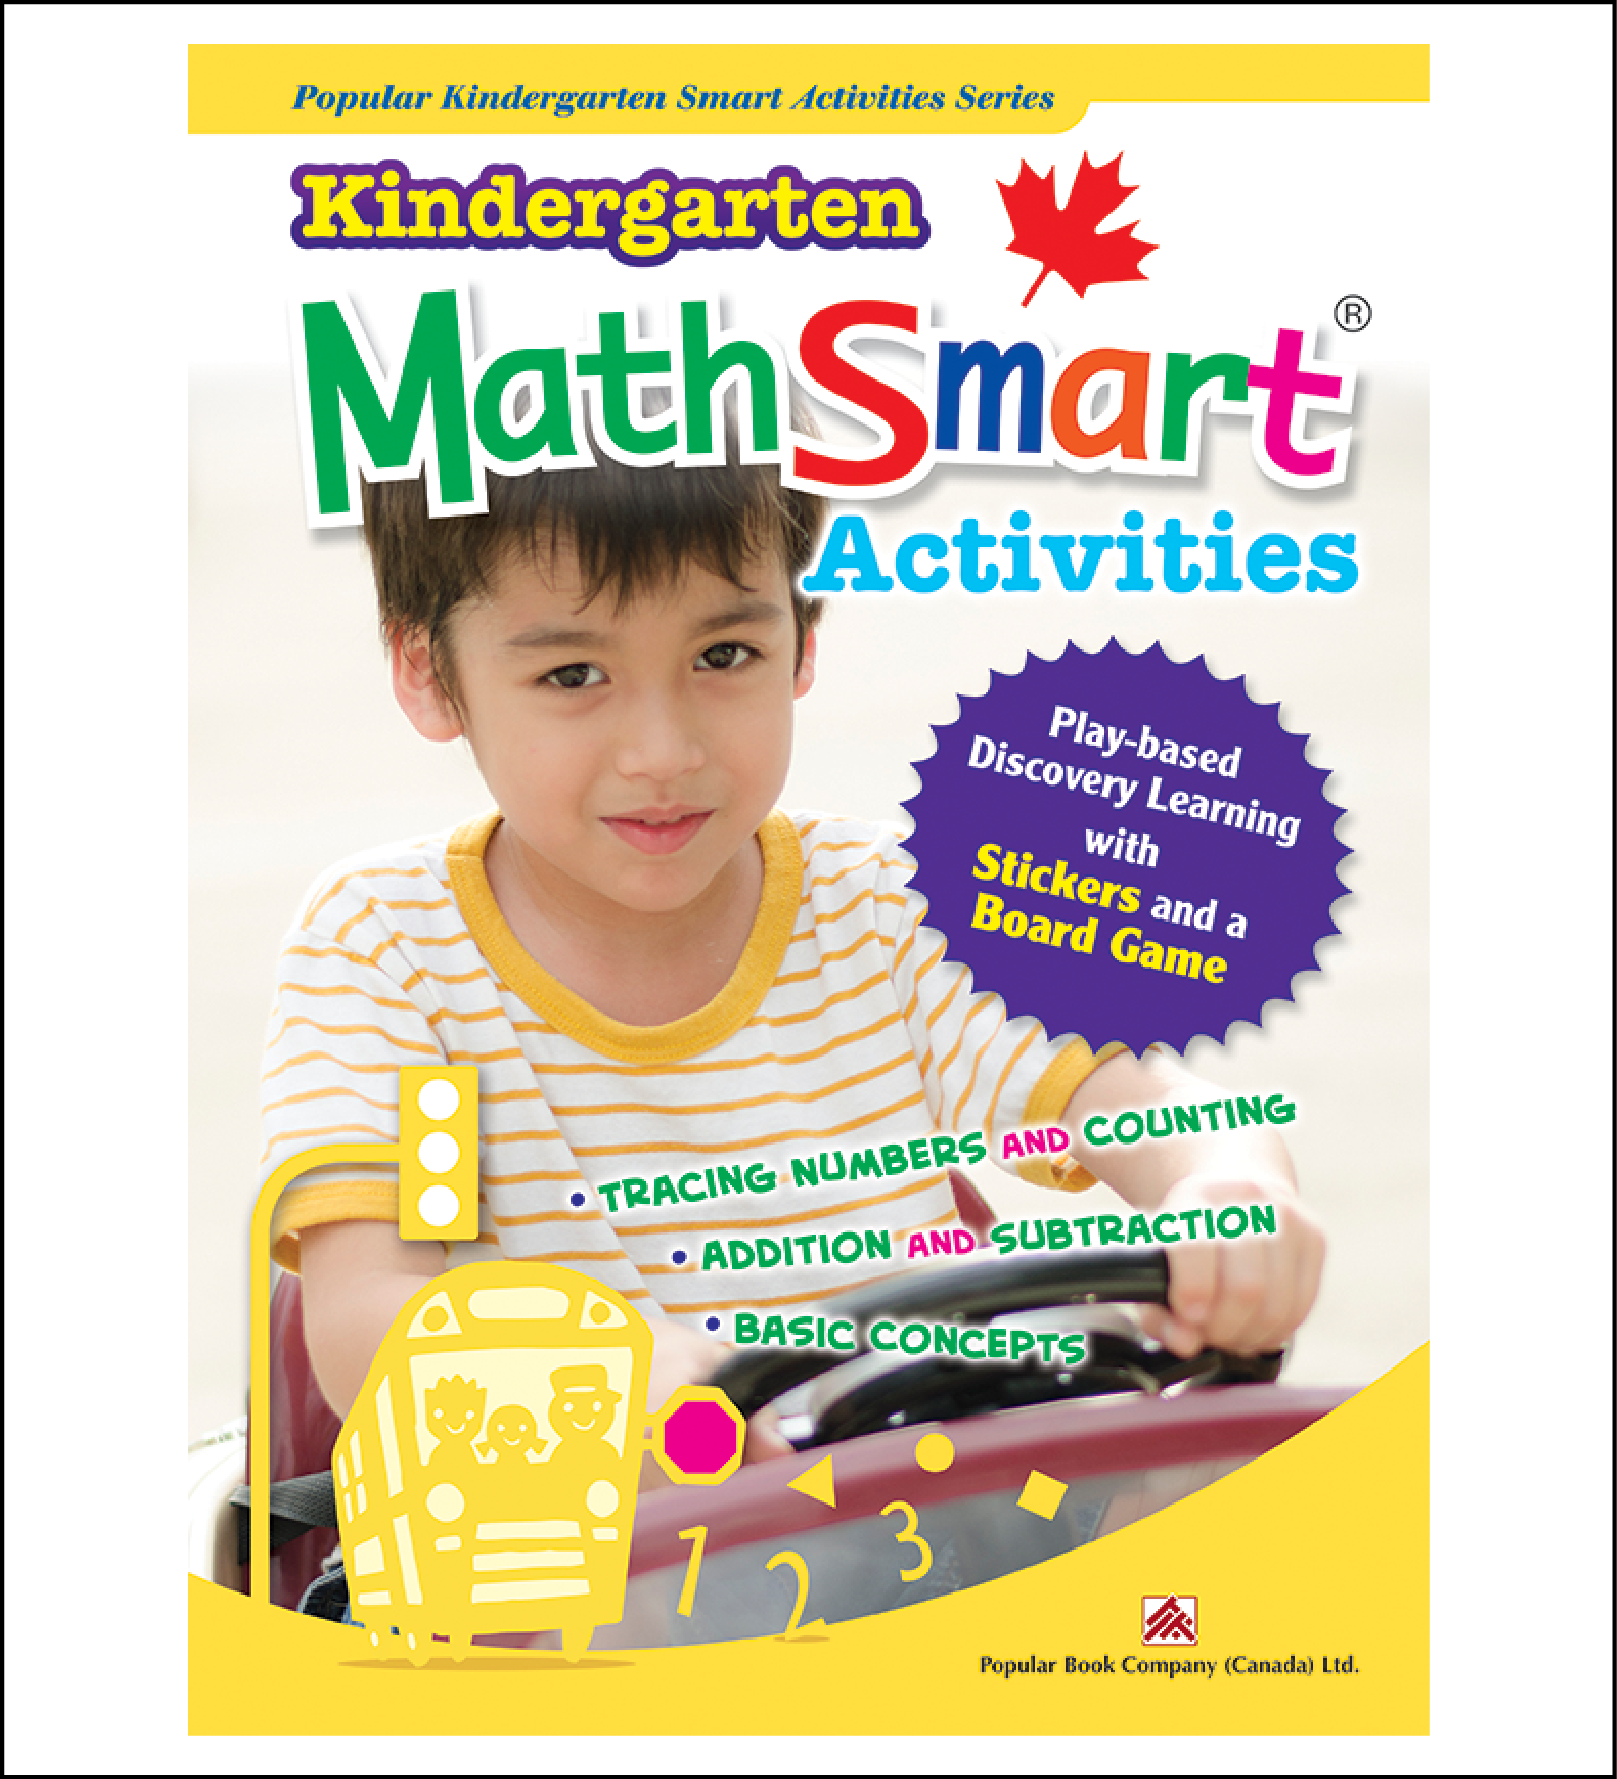 Activtiy book for kids Kindergarten MathSmart Activities